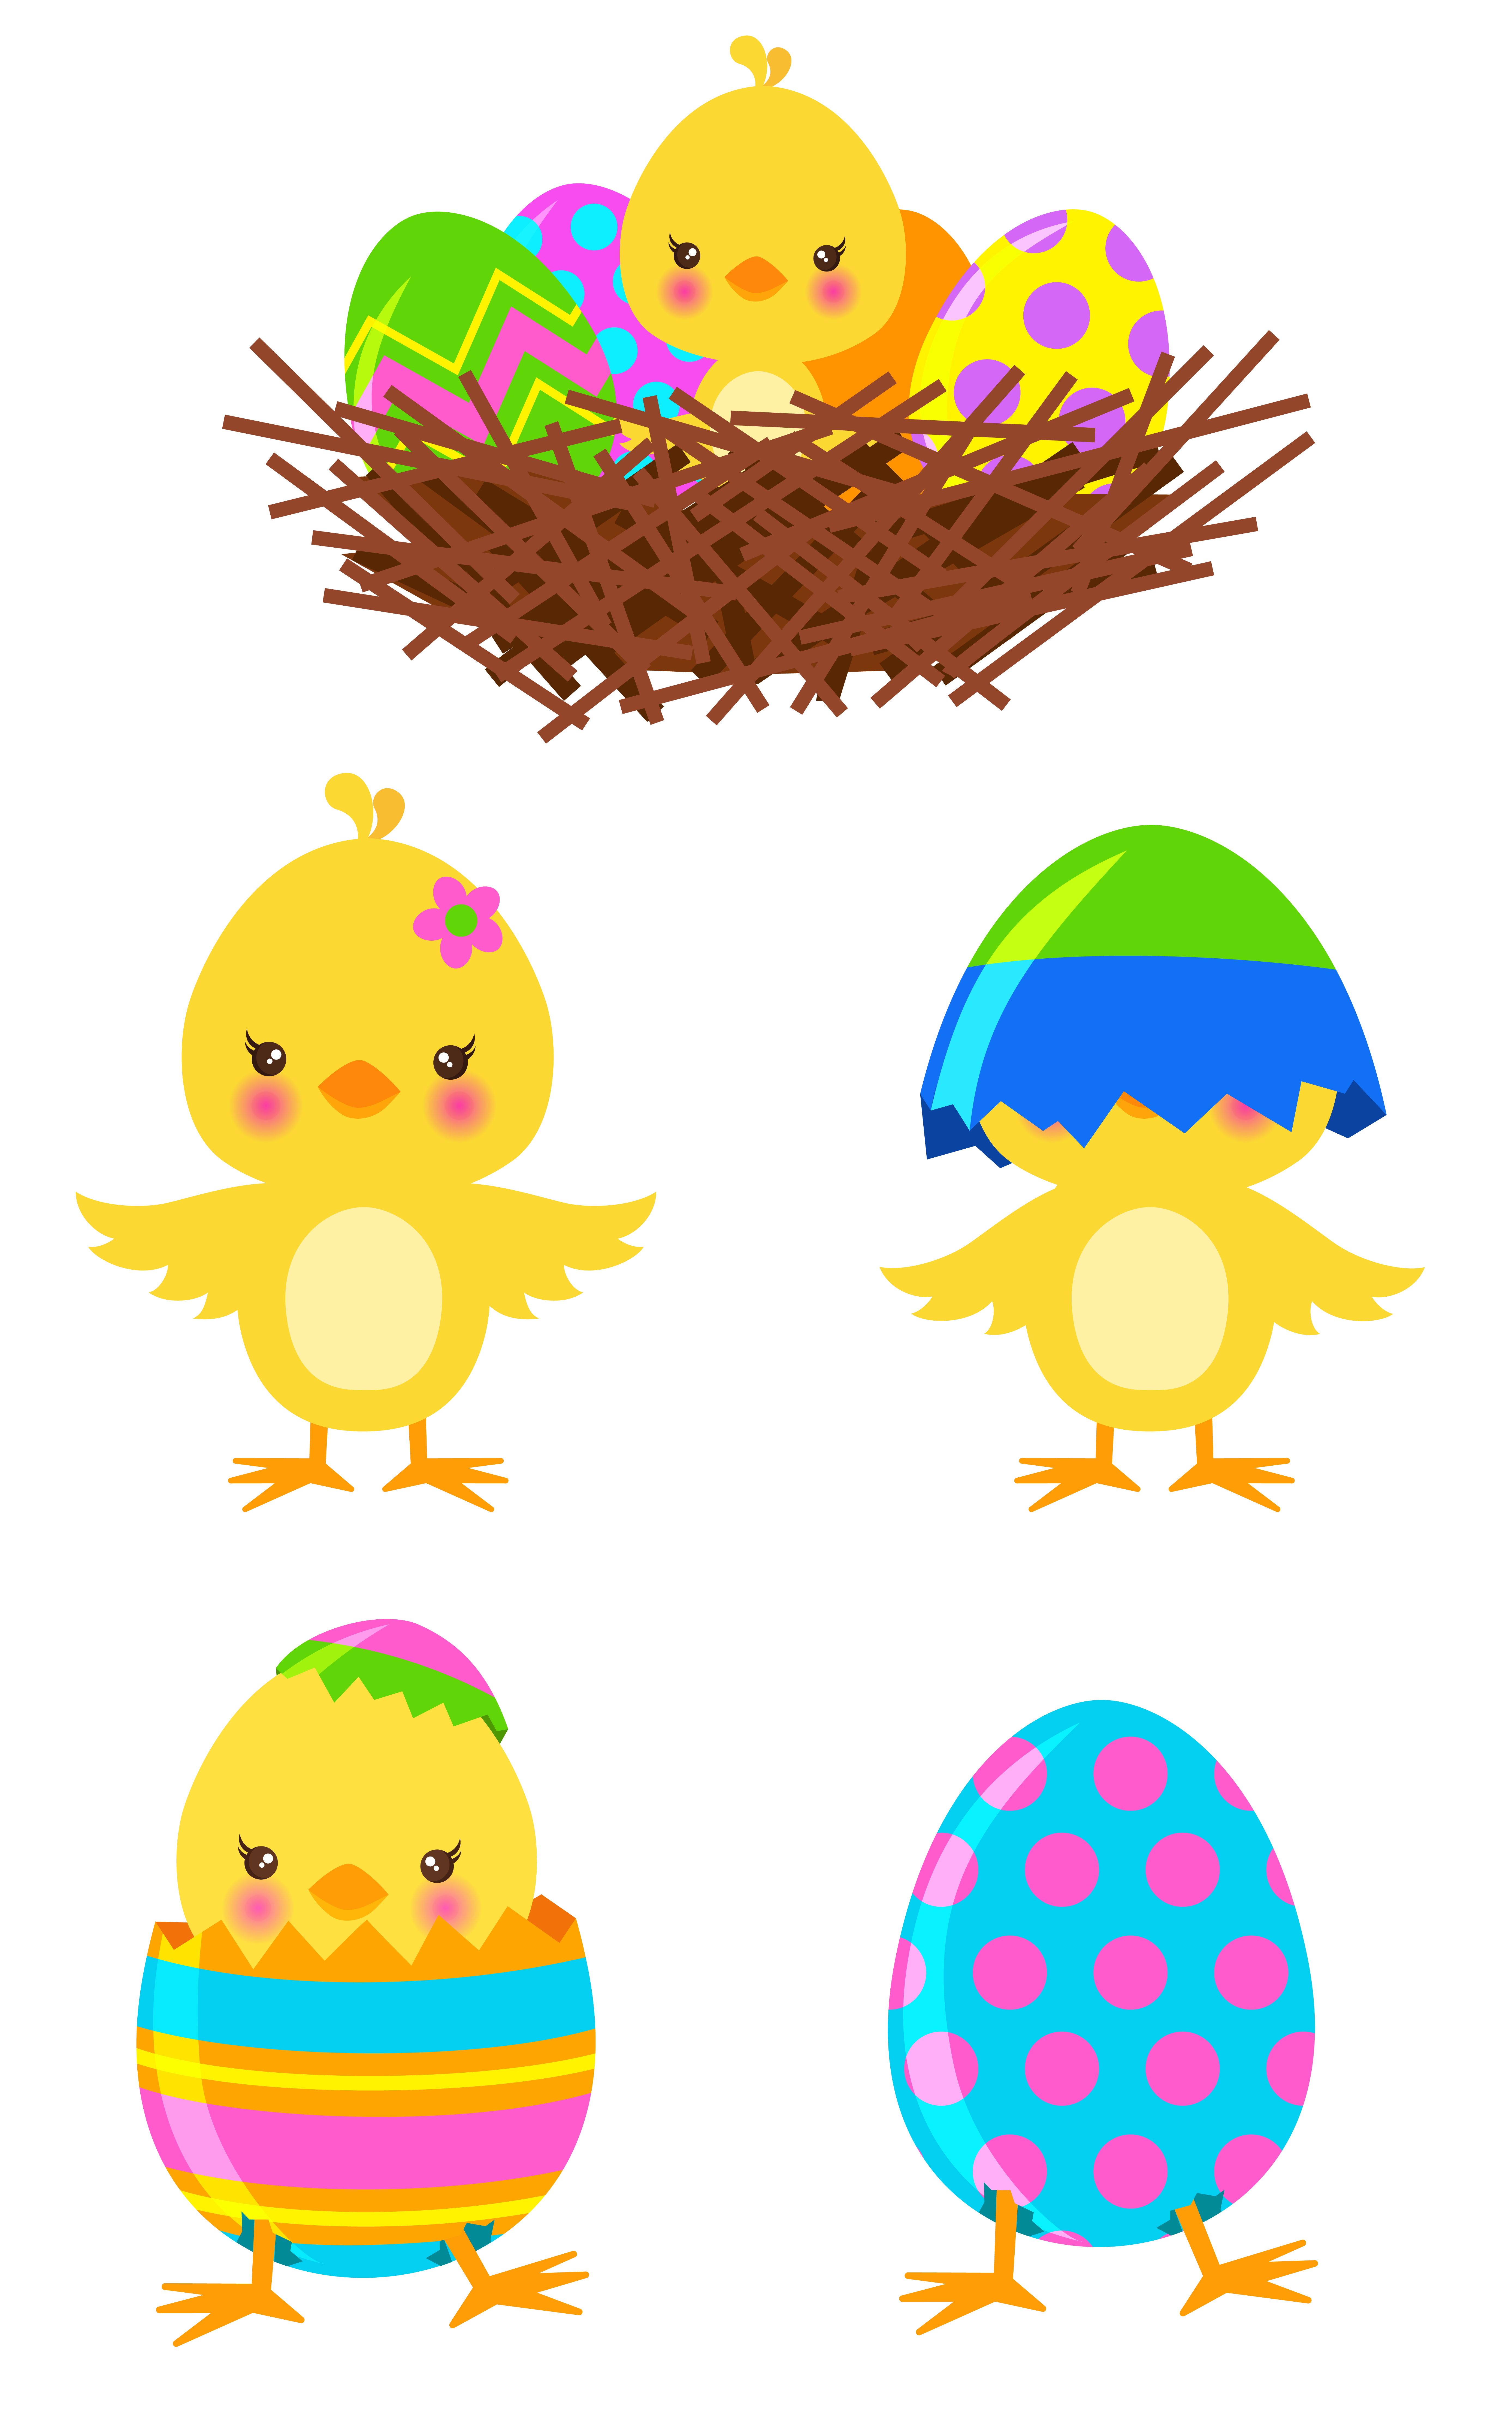 ... clipart images; Collection Easter Chick Images Pictures - Jefney ...